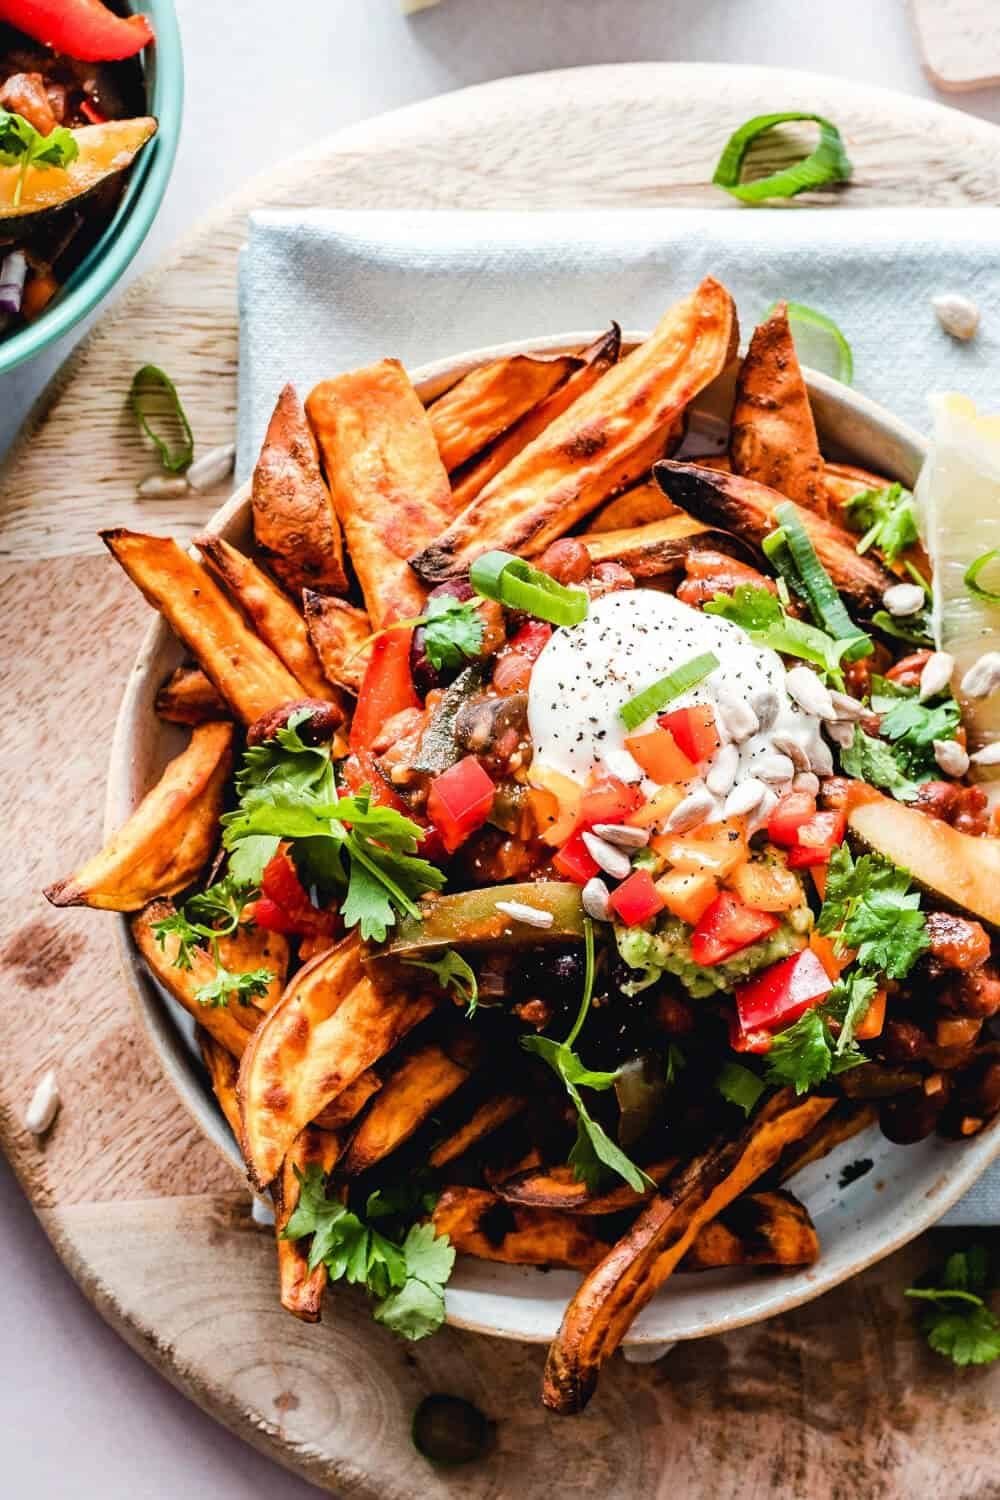 A plate sweet potato fries with sour cream and salsa